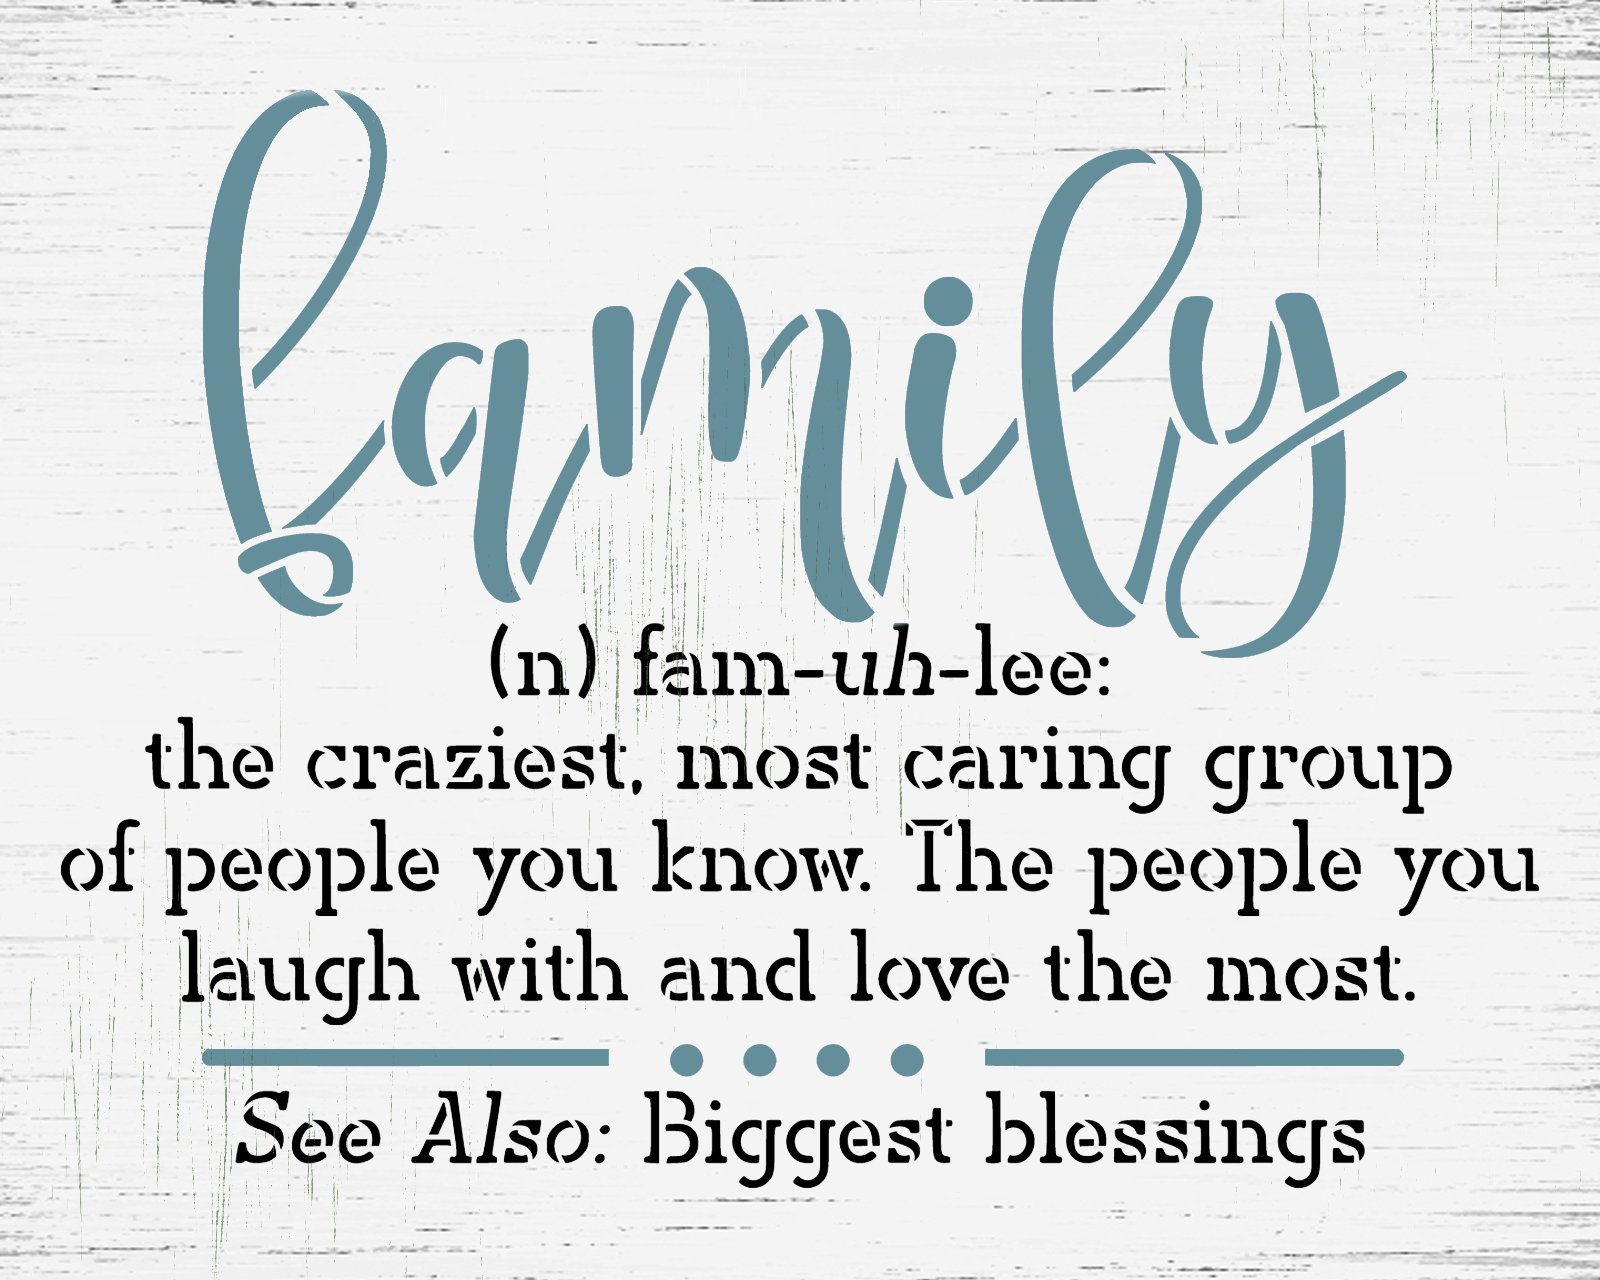 Family Definition Stencil by StudioR12   Craft DIY Love Laugh Blessing Home Decor   Paint Phonetic Spelling Wood Sign Reusable Template   Select Size